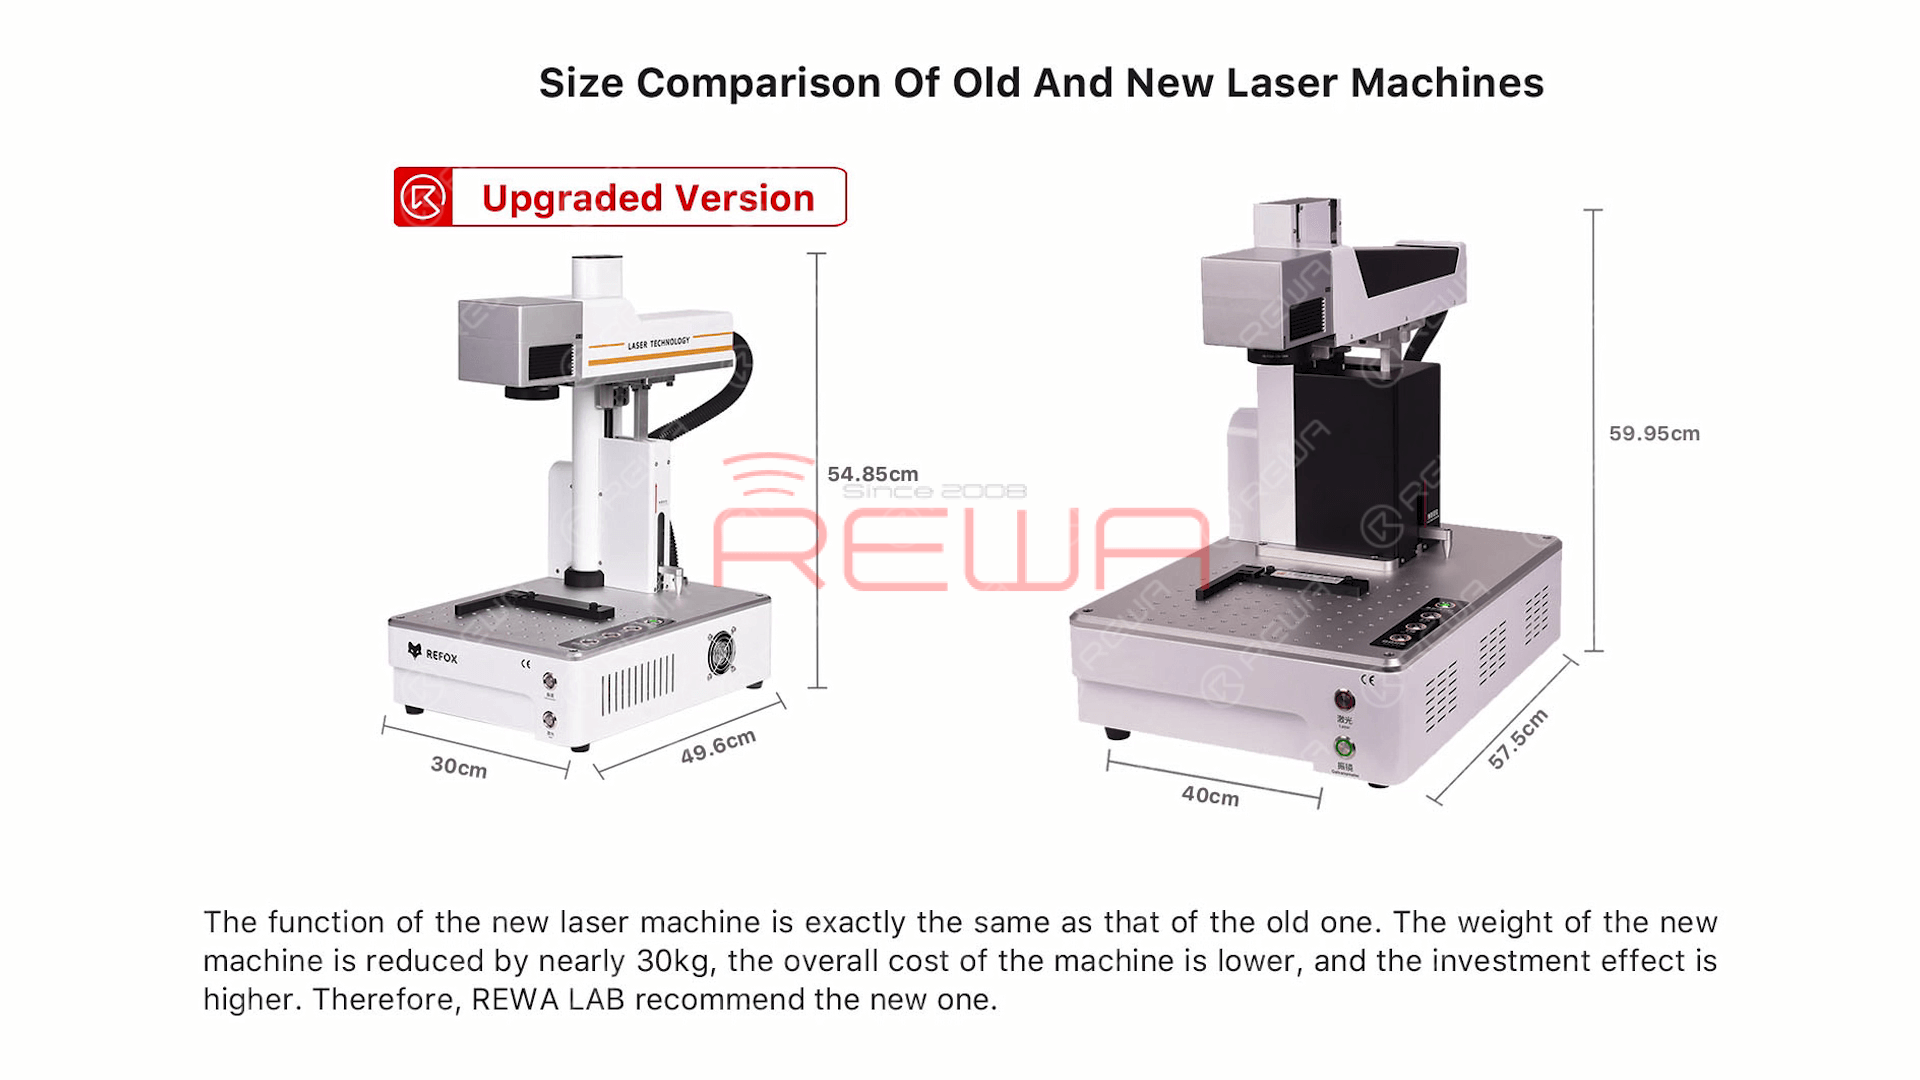 After a year of upgrades, REWA LAB once again selected an upgraded version laser machine that has a smaller size, lower cost, and identical performance.